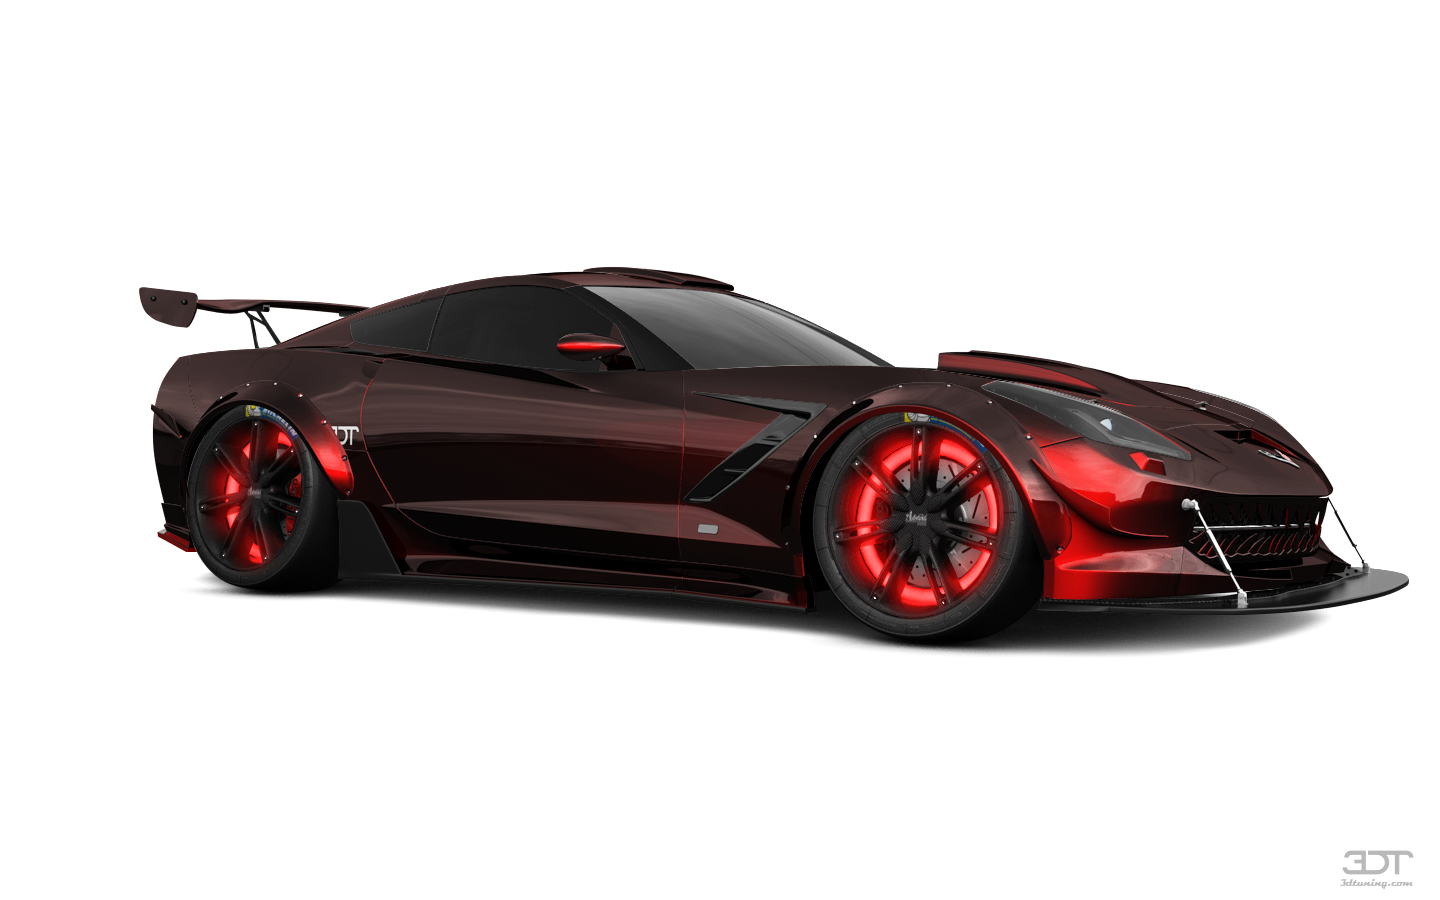 Chevrolet Corvette C7 2 Door Coupe 2015 tuning